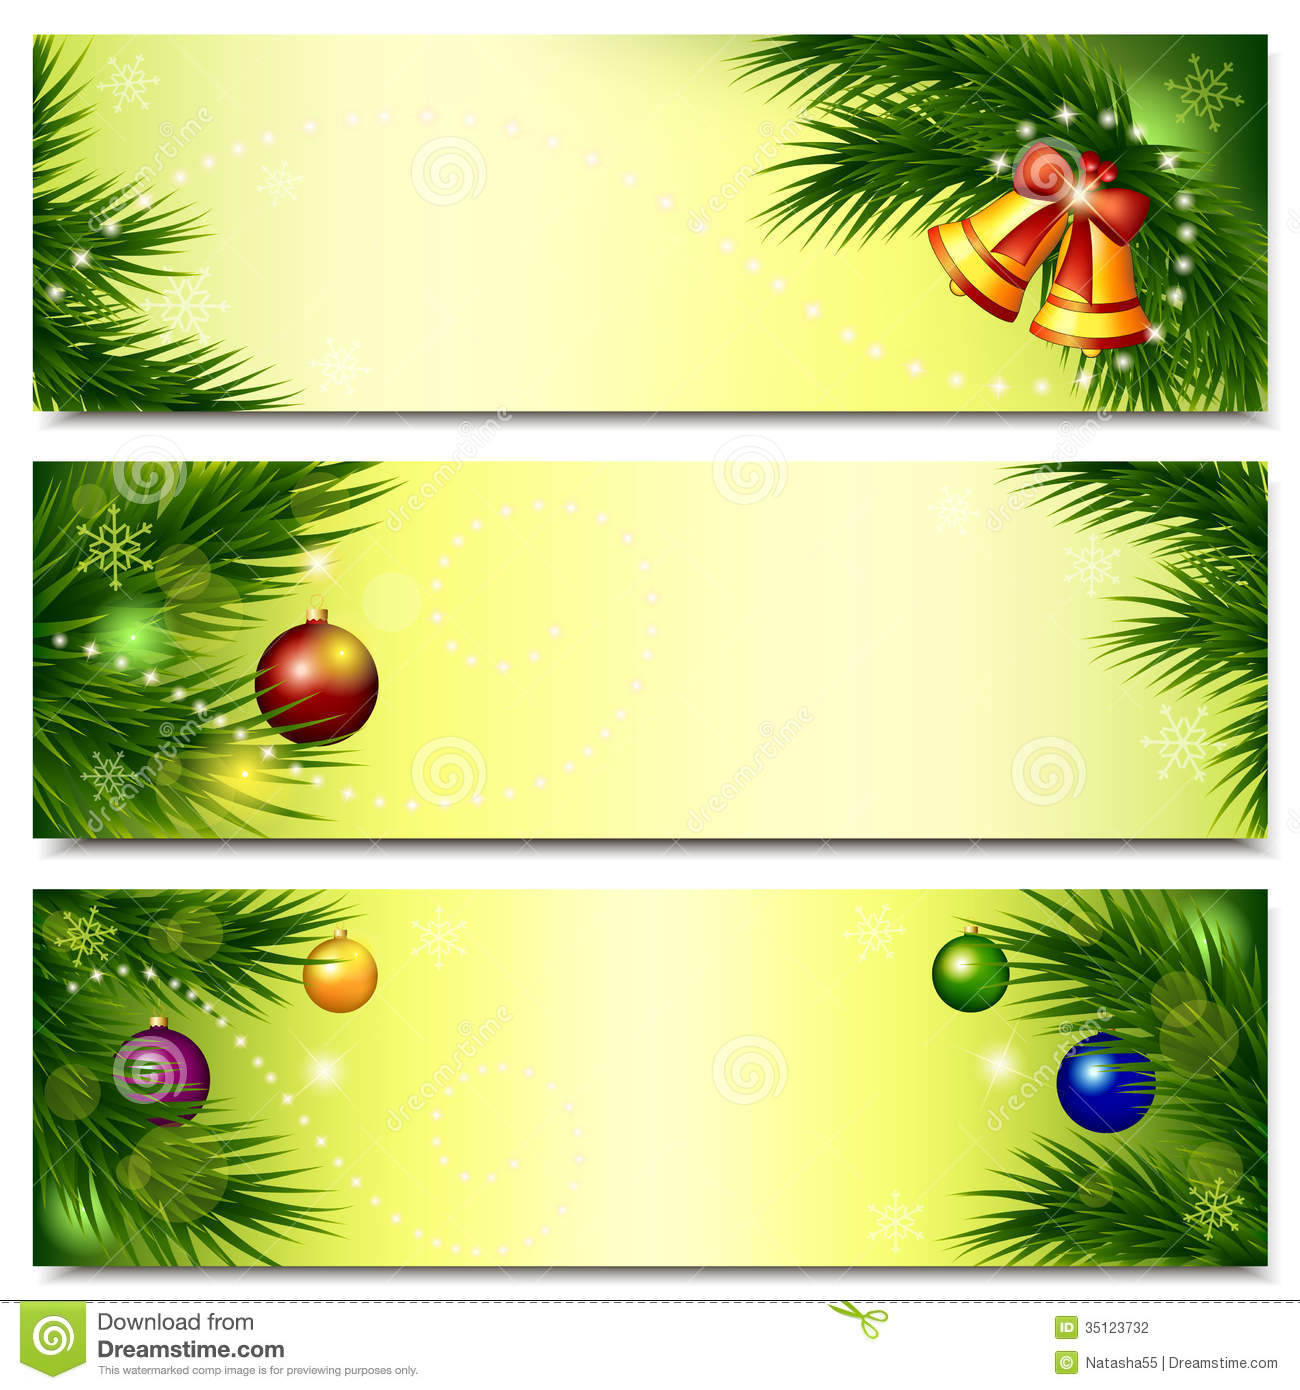 Banners With Christmas Tree, Bells And Balls Stock Photography ...